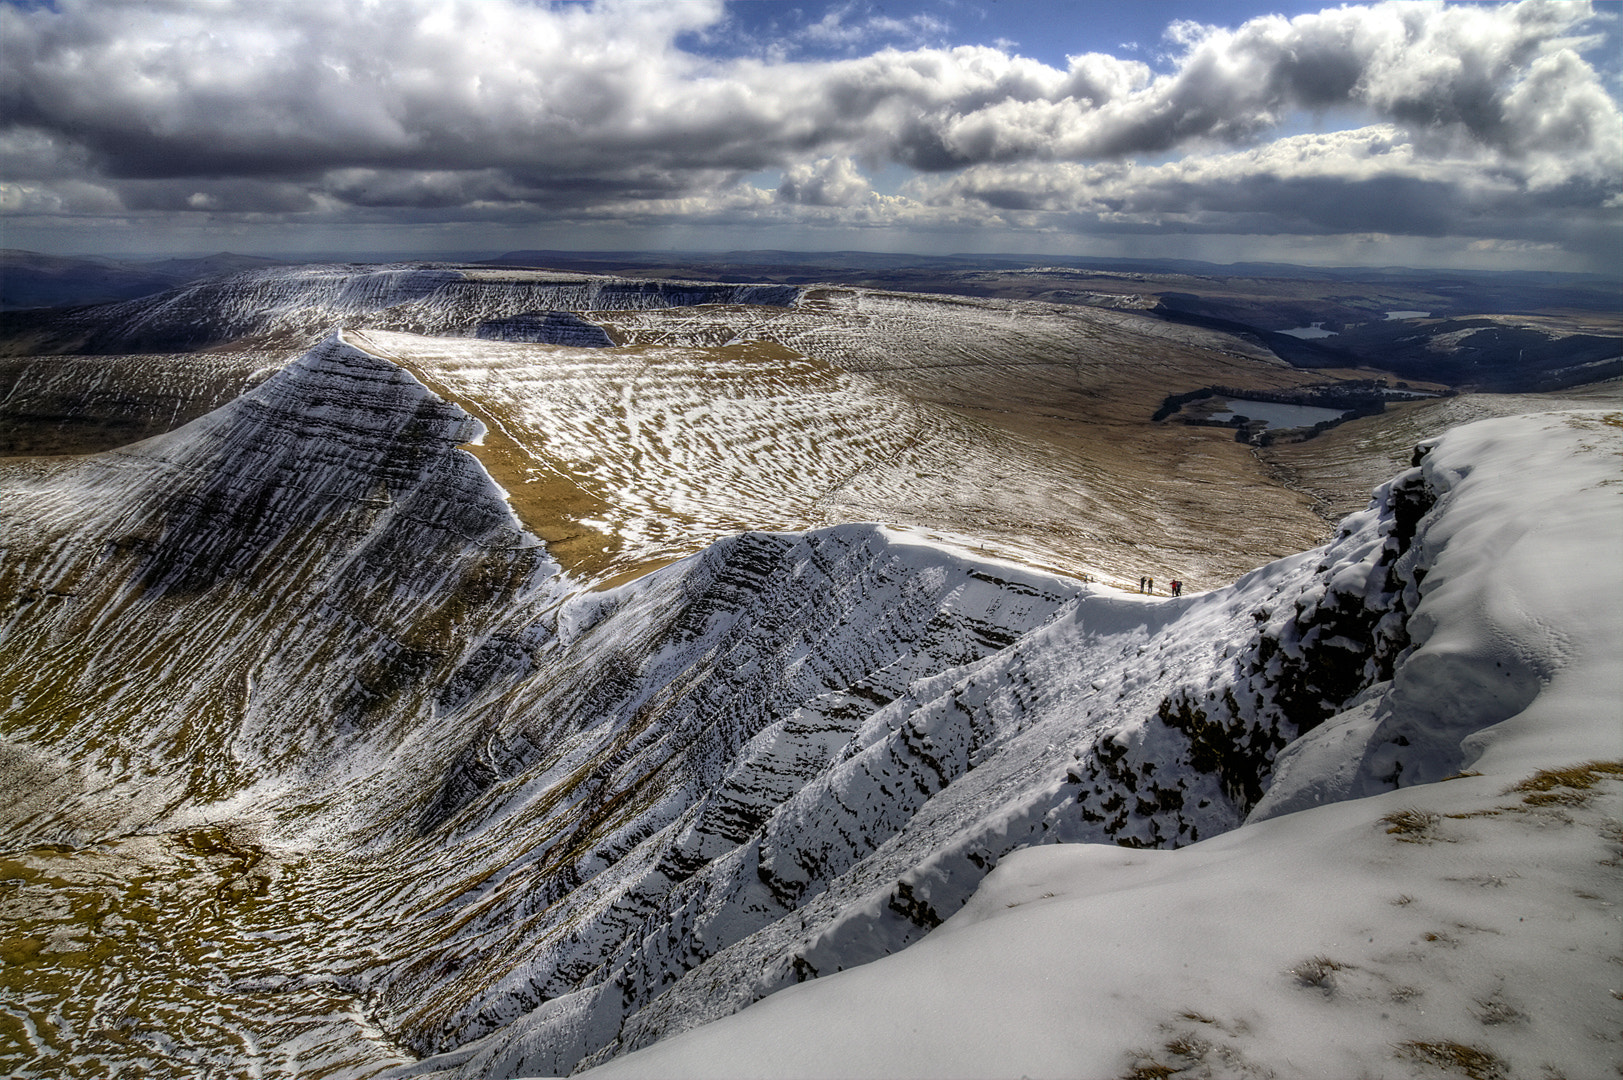 Photograph Welsh Peaks by jimthurston on 500px